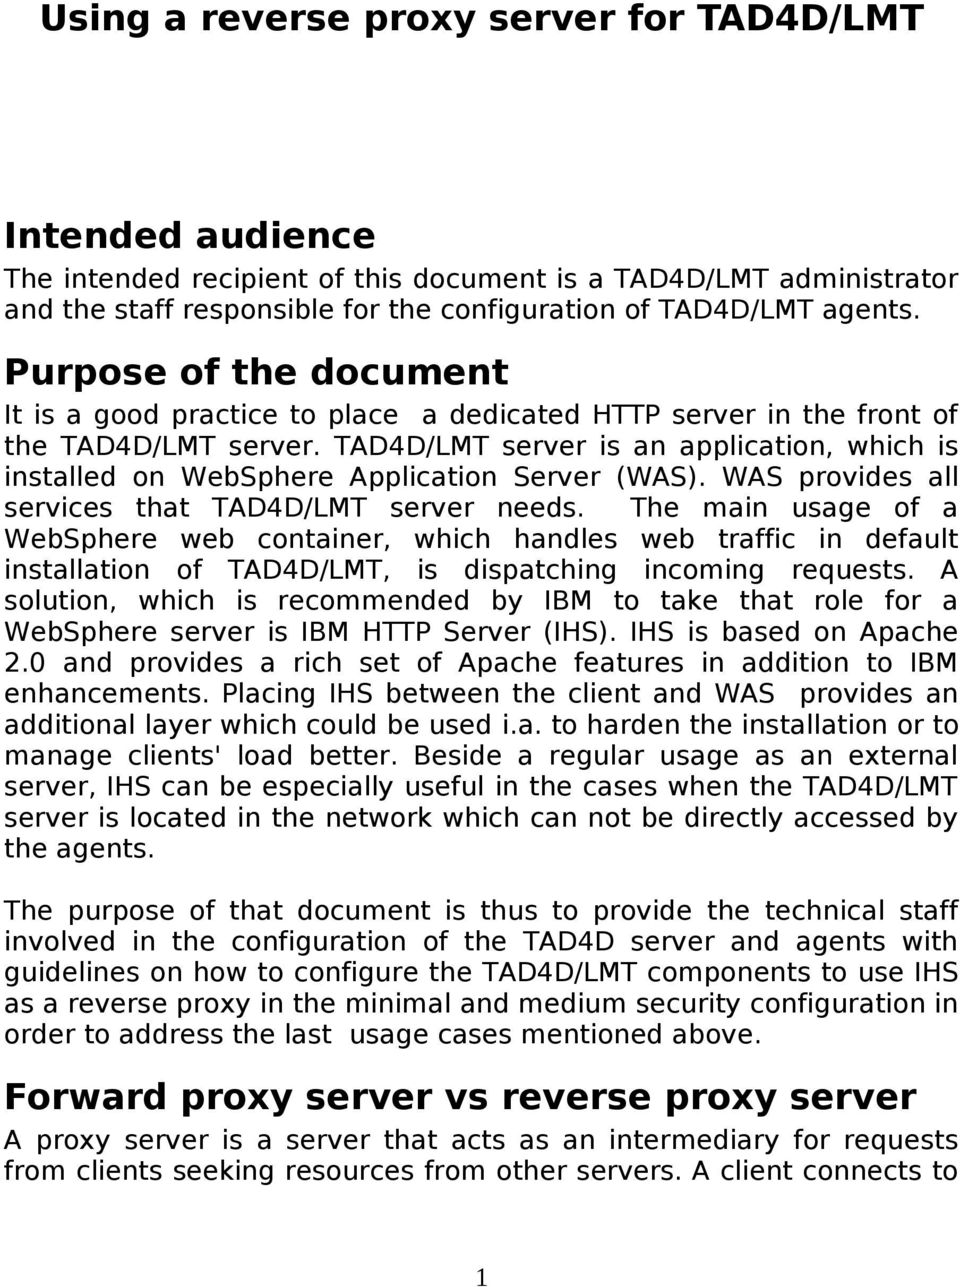 TAD4D/LMT server is an application, which is installed on WebSphere Application Server (WAS). WAS provides all services that TAD4D/LMT server needs.